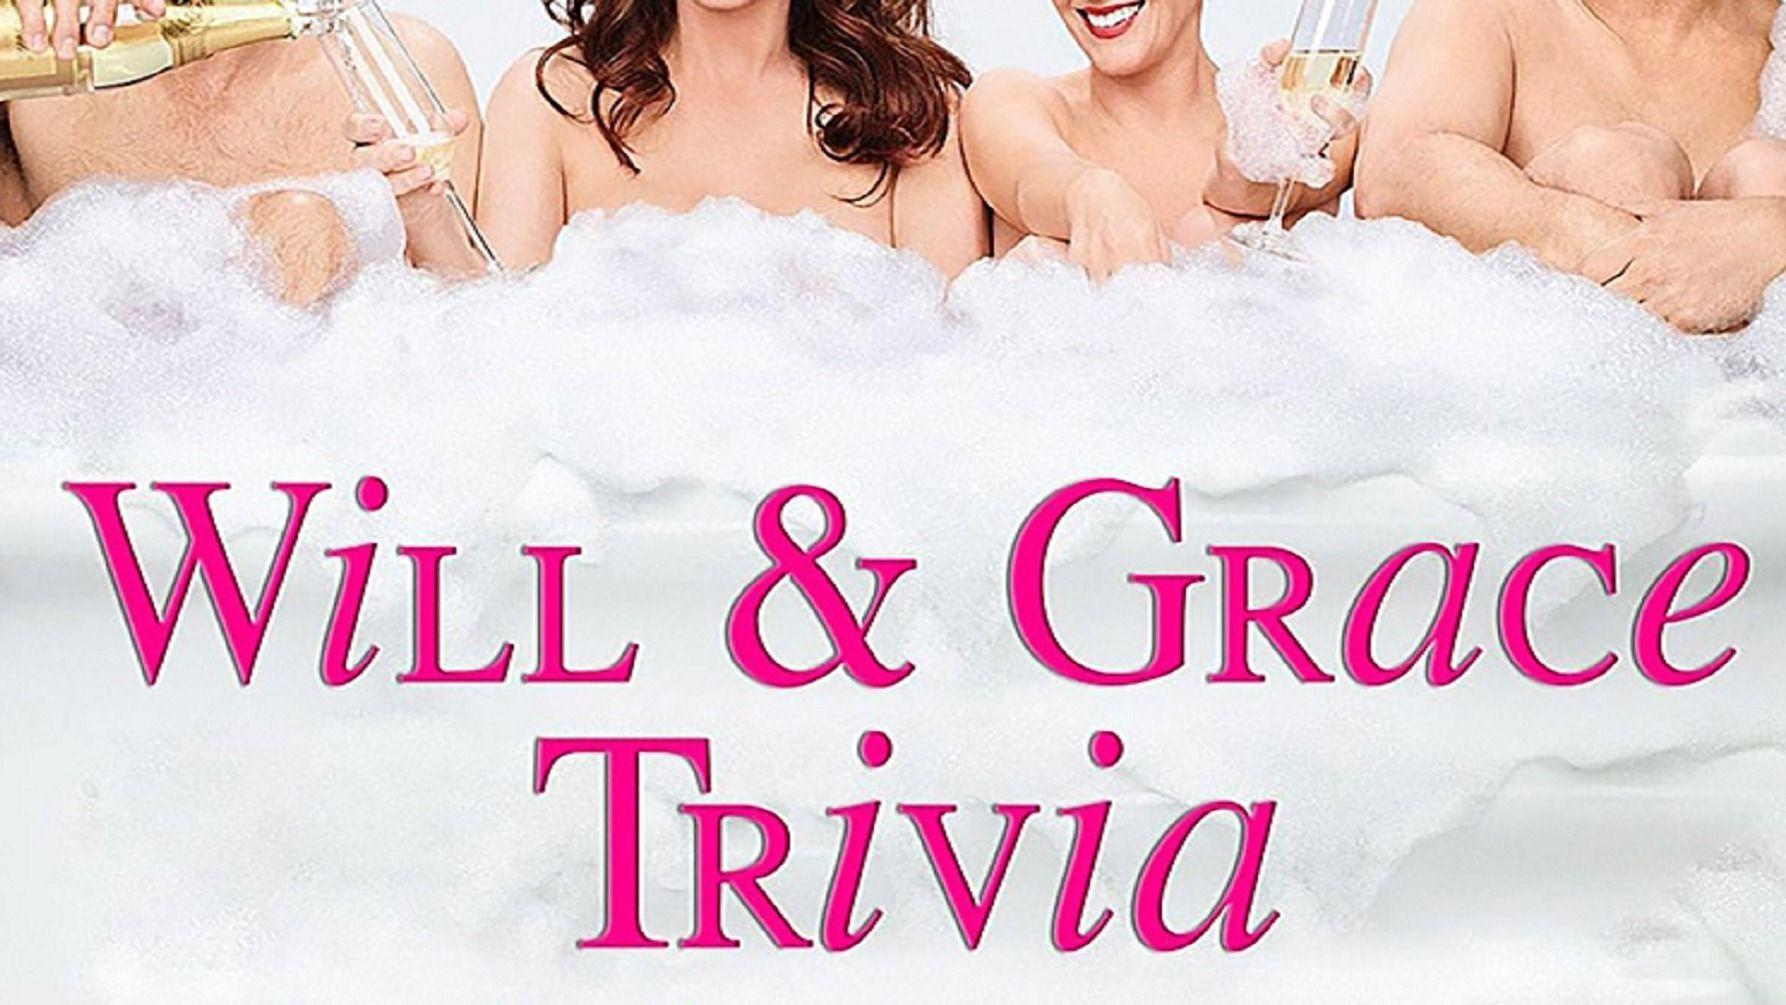 109304 image highres 491414266 - LIVE (online) Will & Grace Trivia! Fundraiser